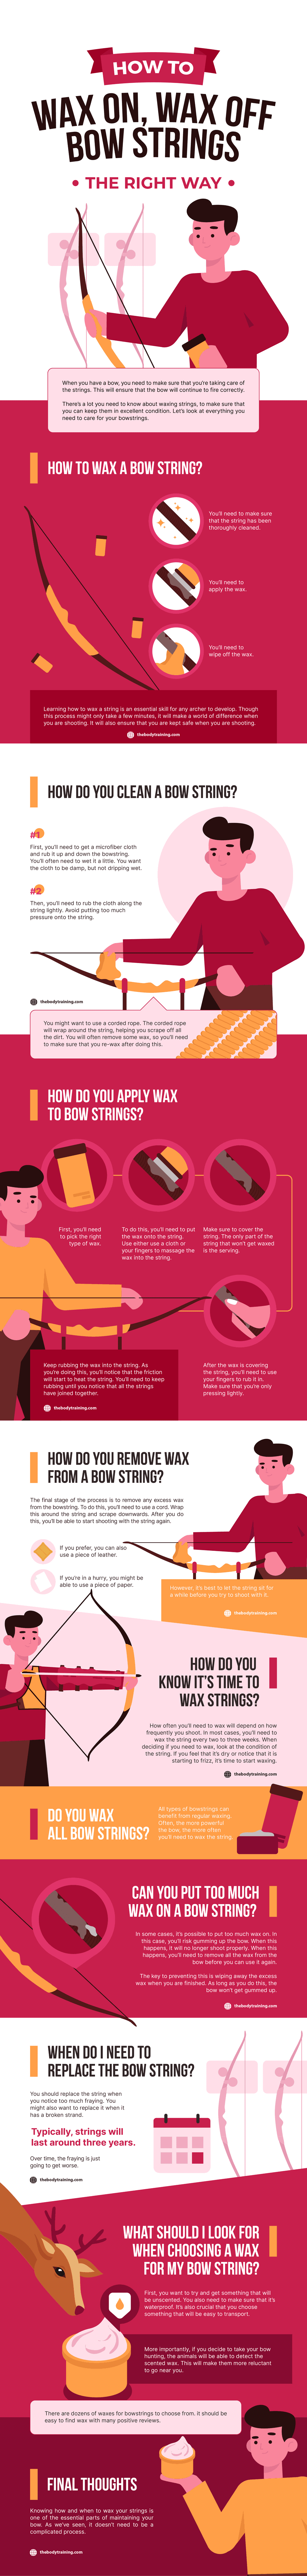 How To Wax Bow Strings The Right Way 🏹 (Free Infographic)